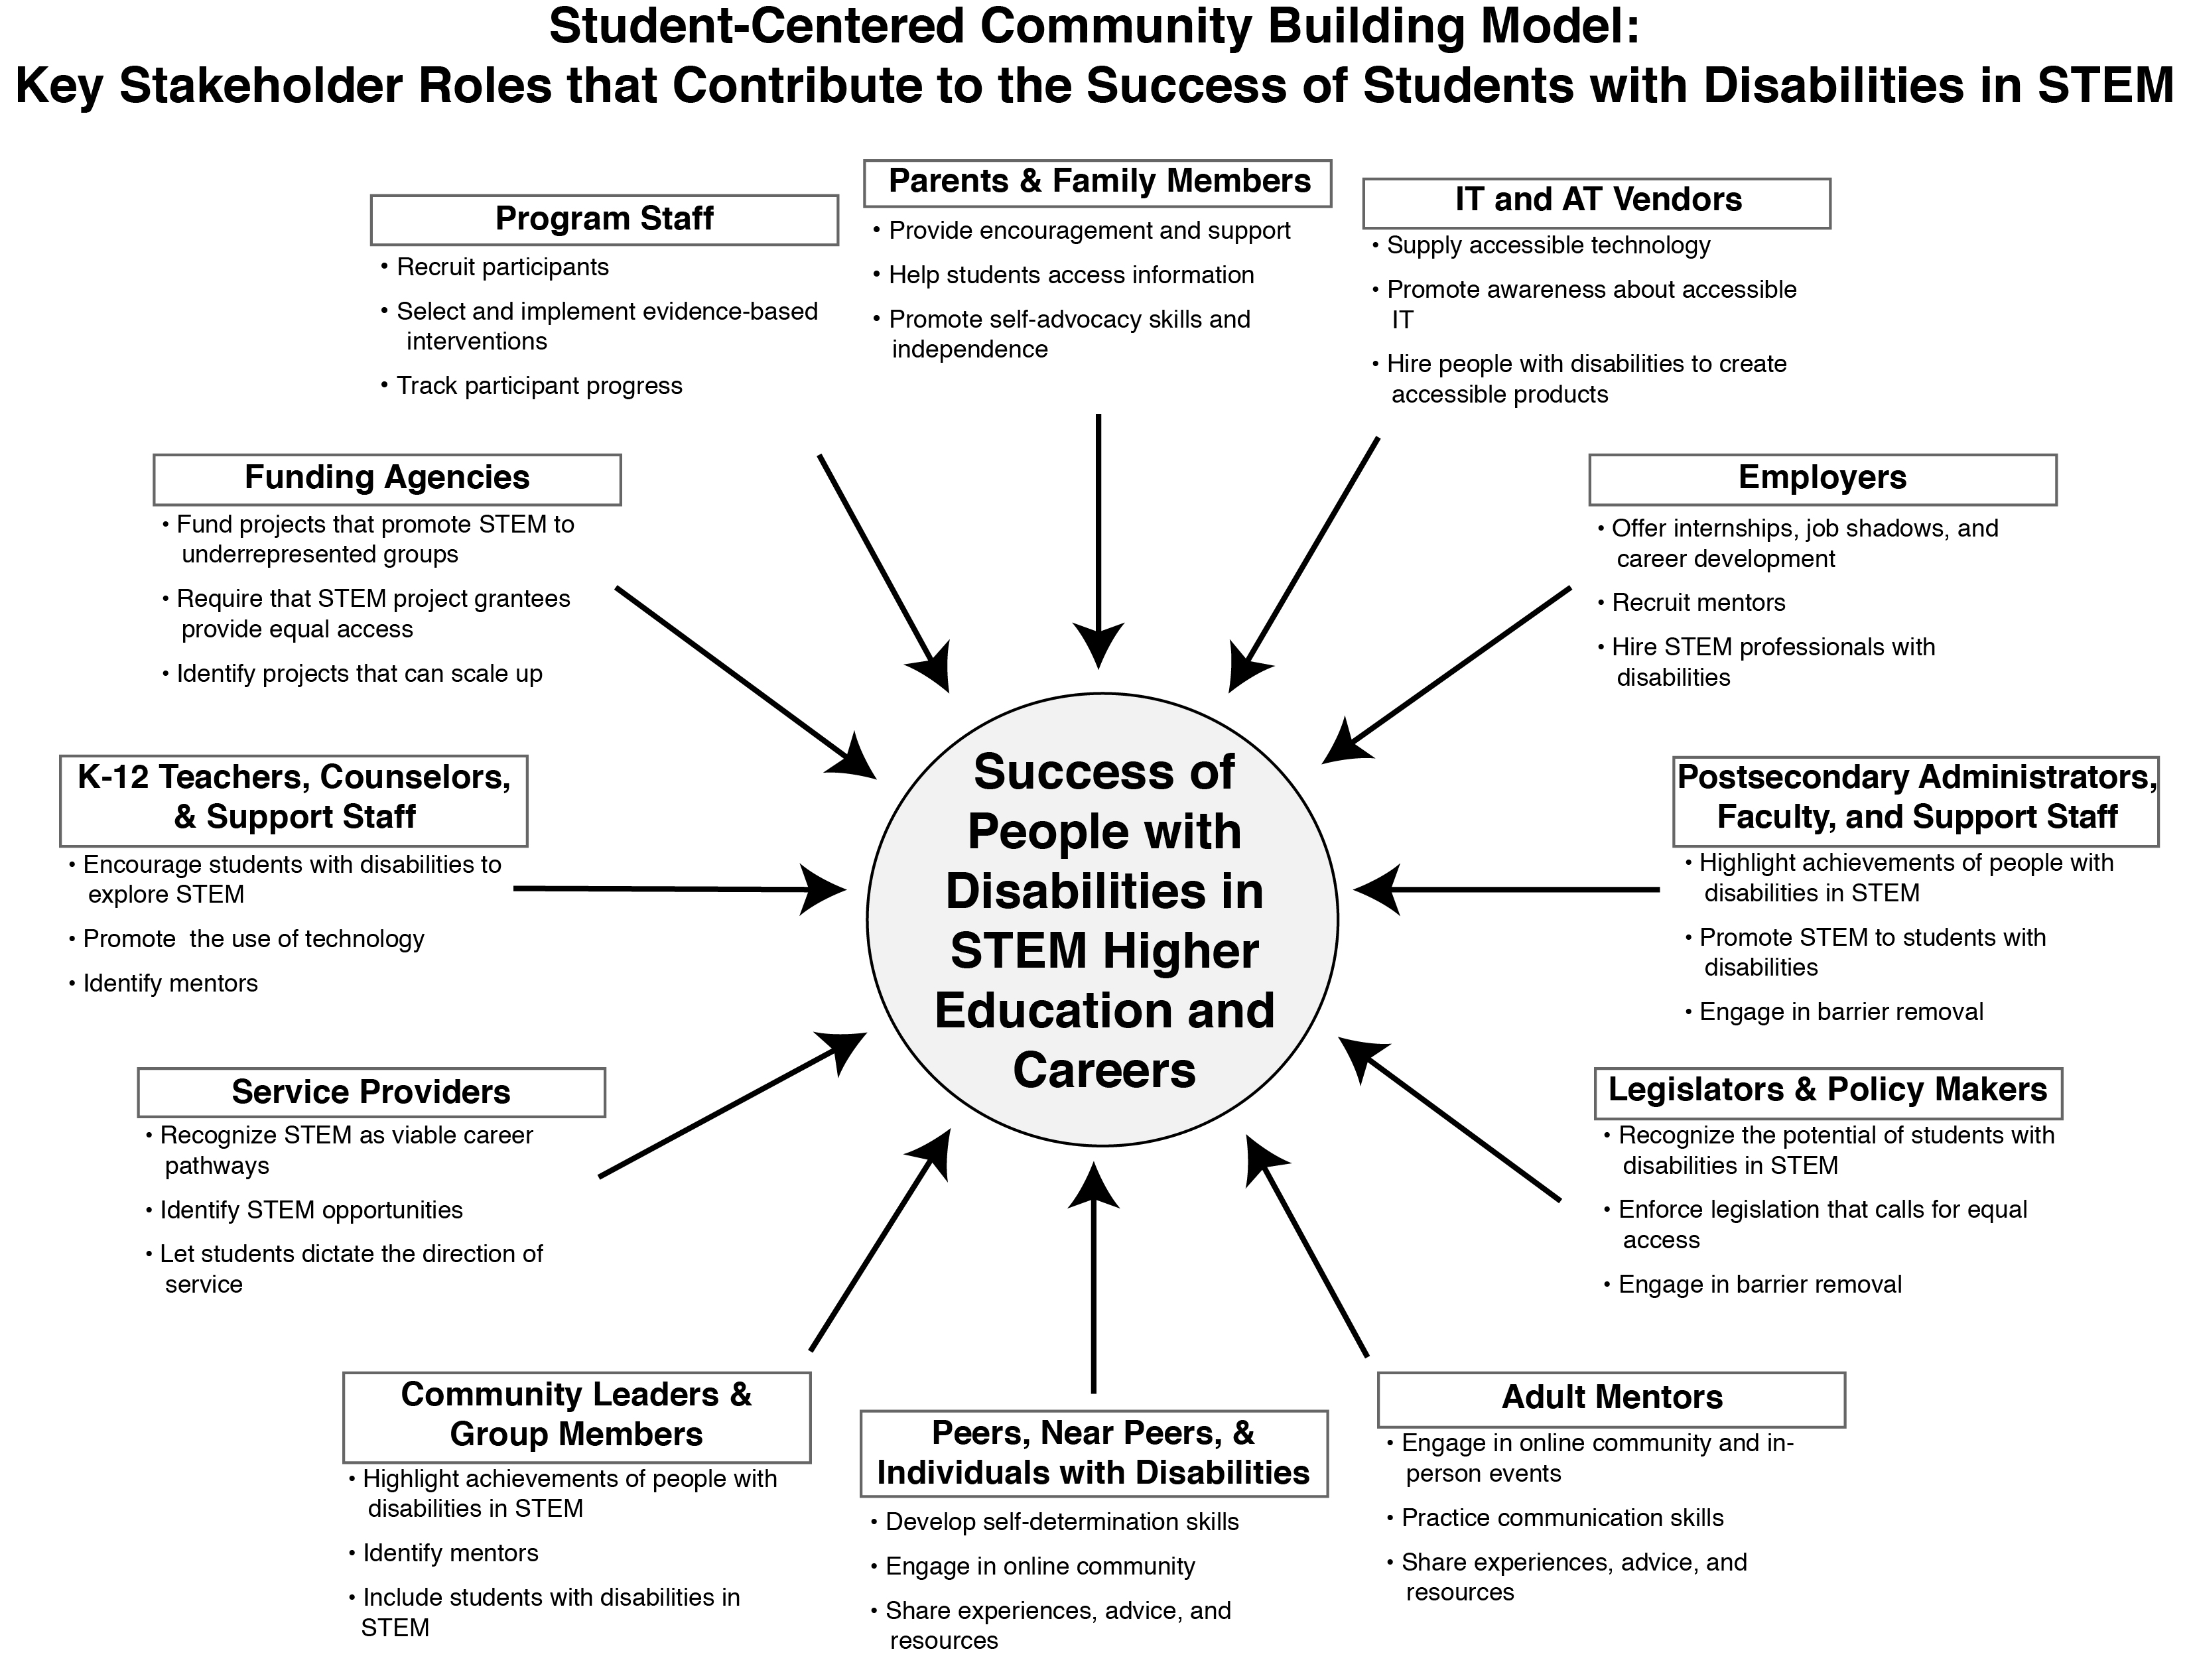 Student-Centered Community Building Model: Key Stakeholders that Contribute to the Success of Students with Disabilities in STEM. Stakeholders include parents and family members, IT and AT vendors, employers, postsecondary administrators and faculty, legislators and policy makers, mentors, peers, community leaders, service providers, teachers, funding agencies, and program staff.